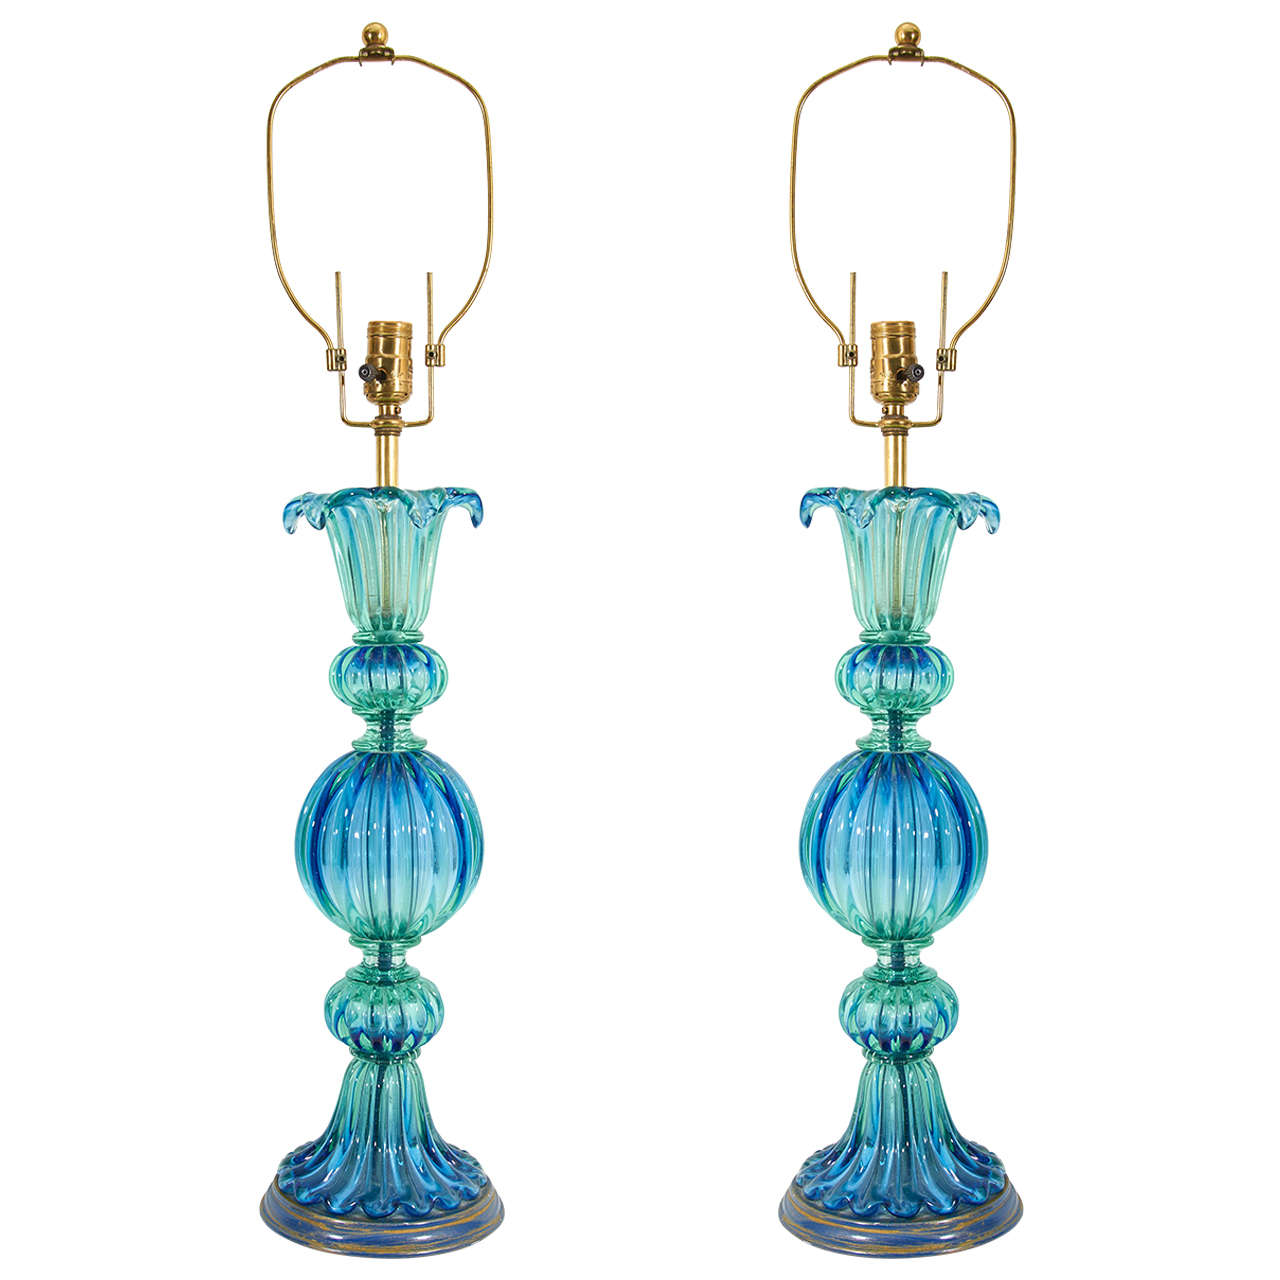 midcentury pair of blue and green murano glass lamps by seguso at 1stdibs. Black Bedroom Furniture Sets. Home Design Ideas